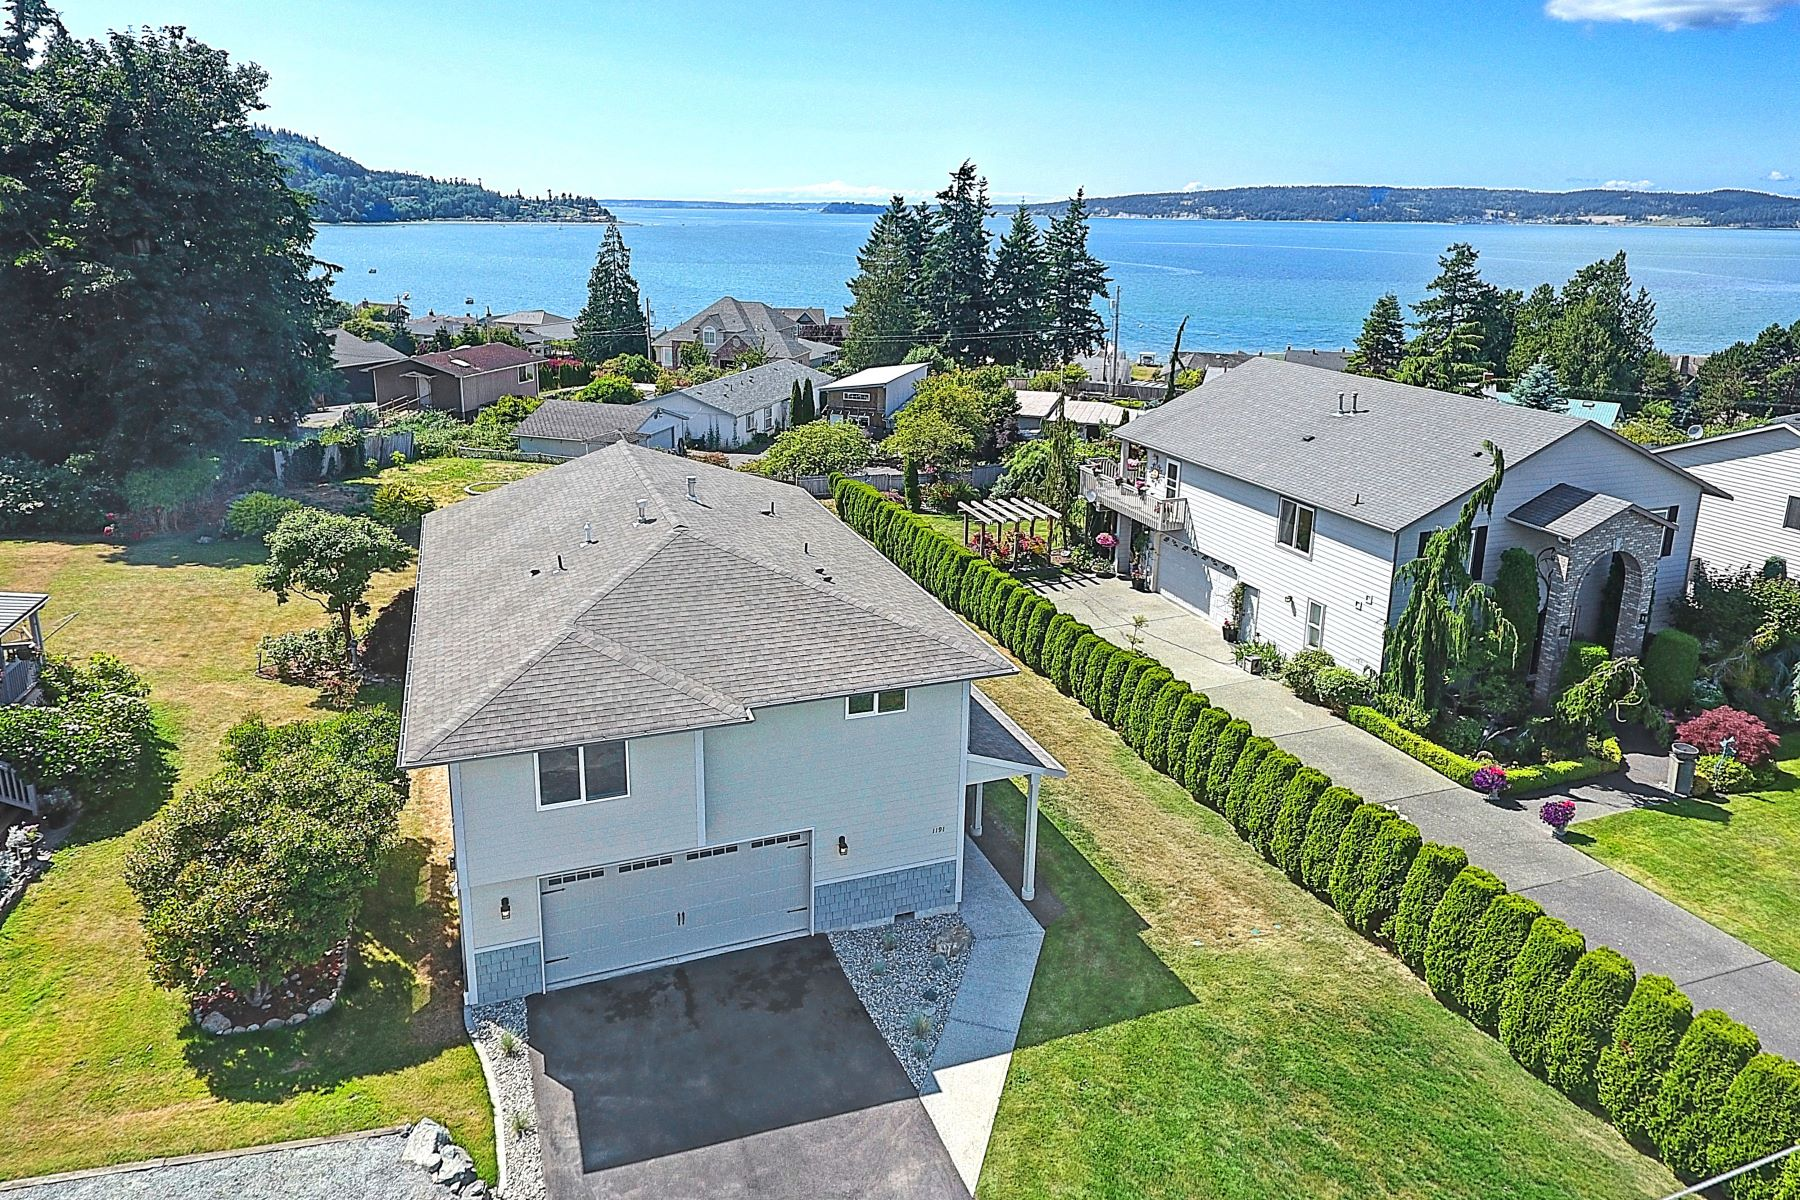 Single Family Homes for Sale at 1191 Pleasant View St, Camano, WA 98282 1191 Pleasant View St Camano, Washington 98282 United States